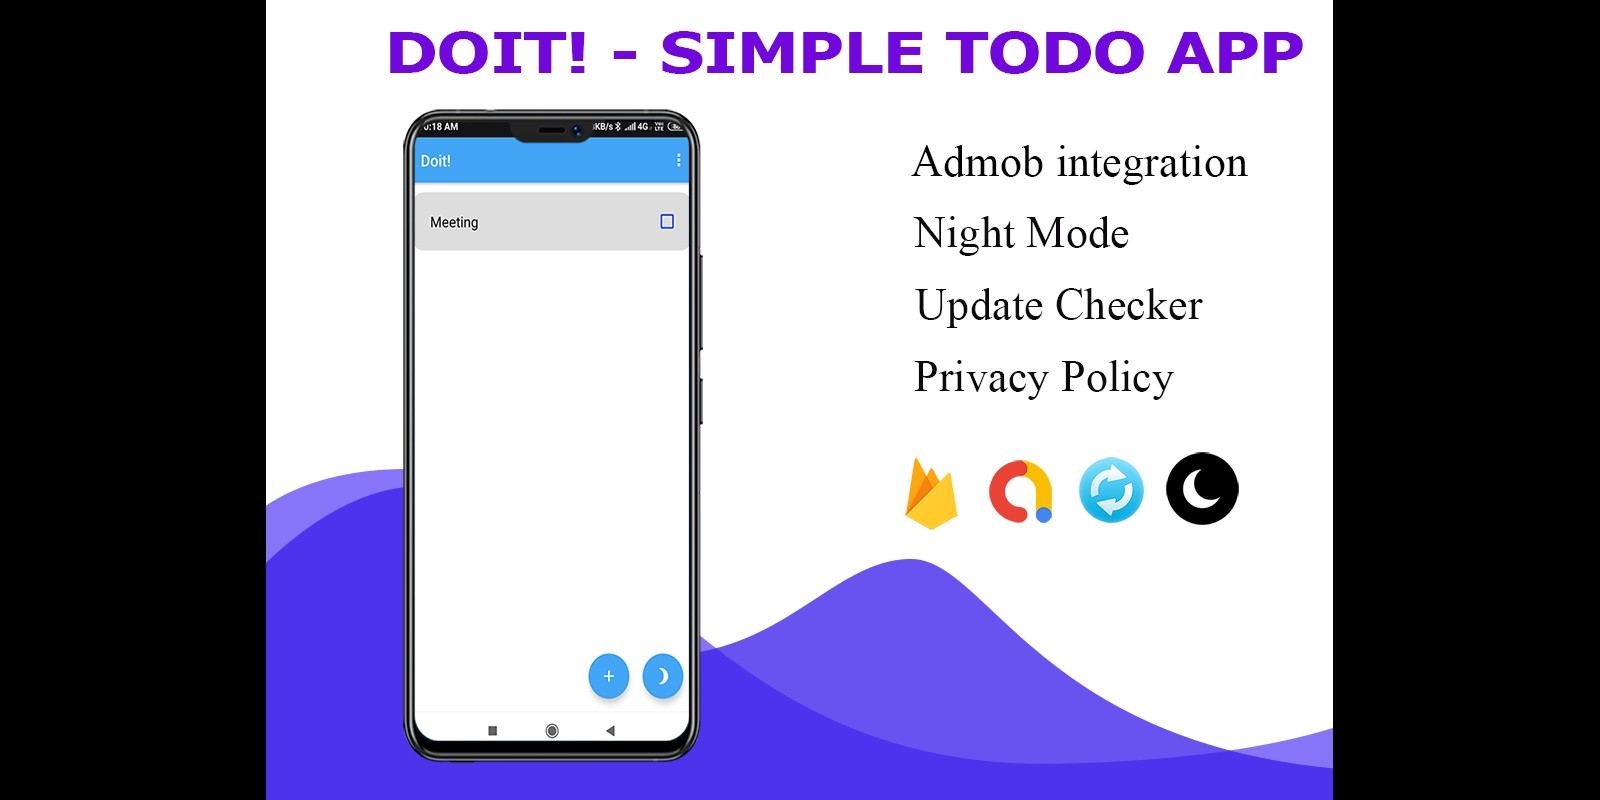 Doit - Simple Todo App